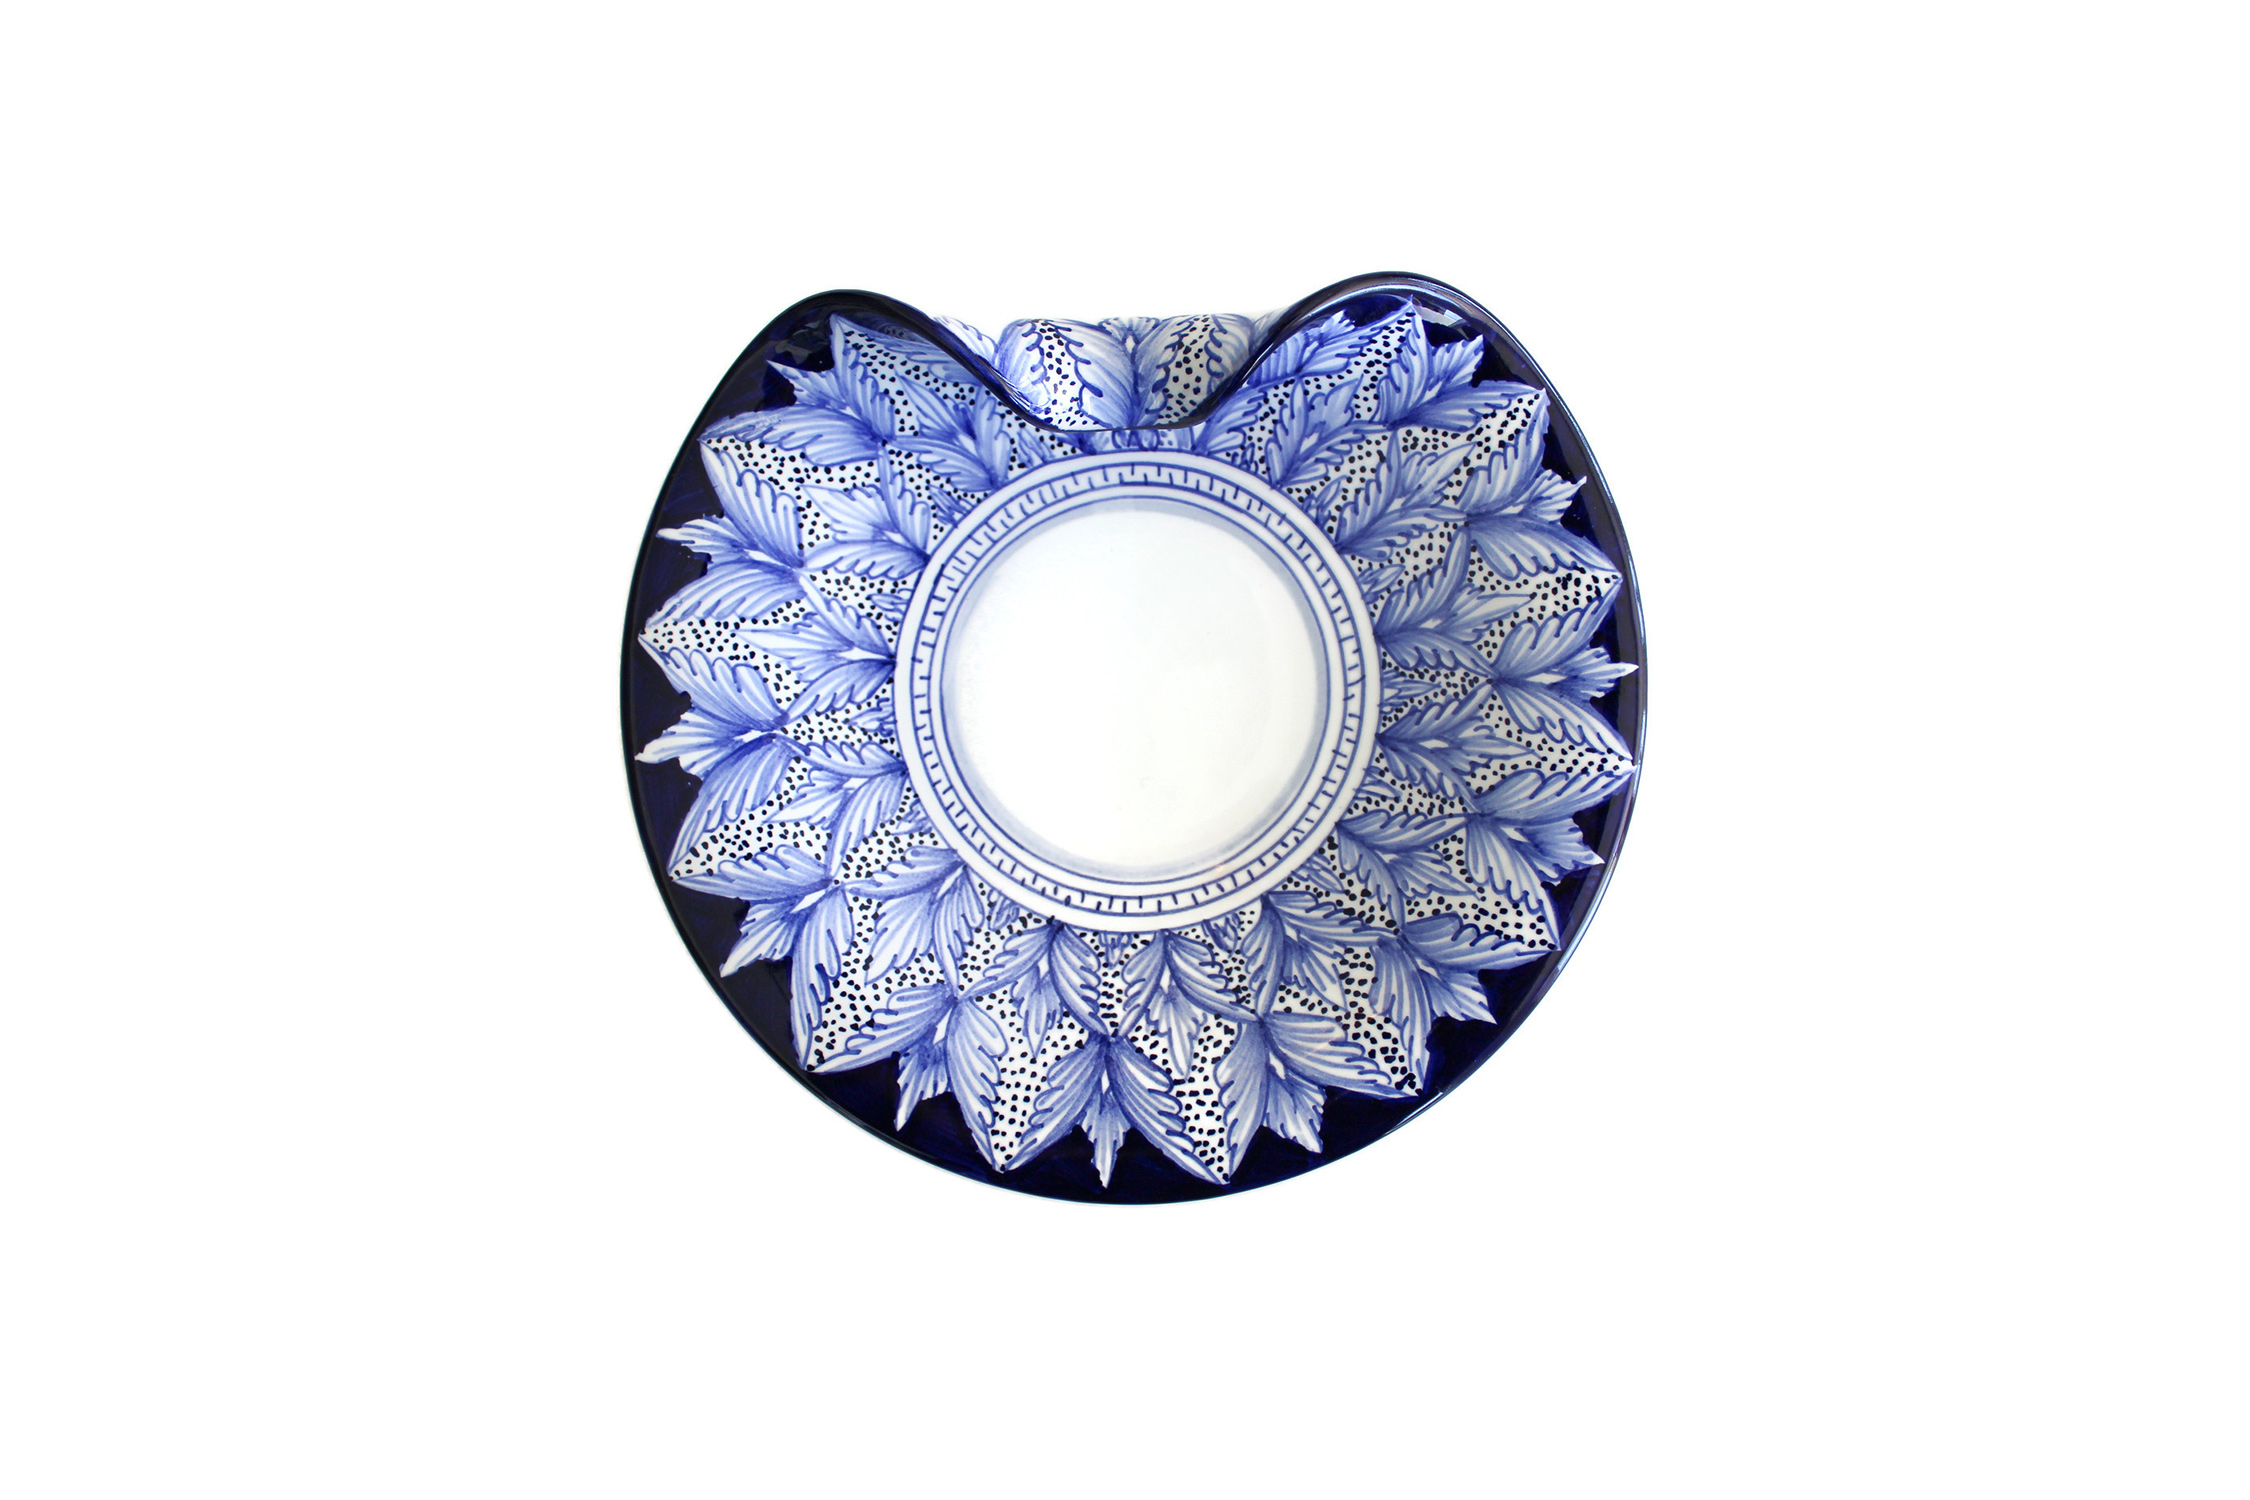 Blu Pavone Art Collection Aperitivo Plate